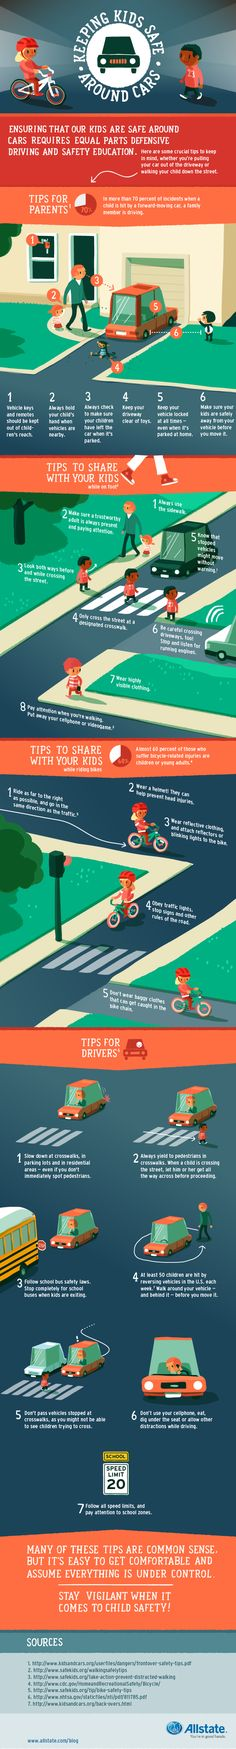 Infographic: Keeping Kids Safe Around Cars -Posted on Feb 13, 2014 by Melissa